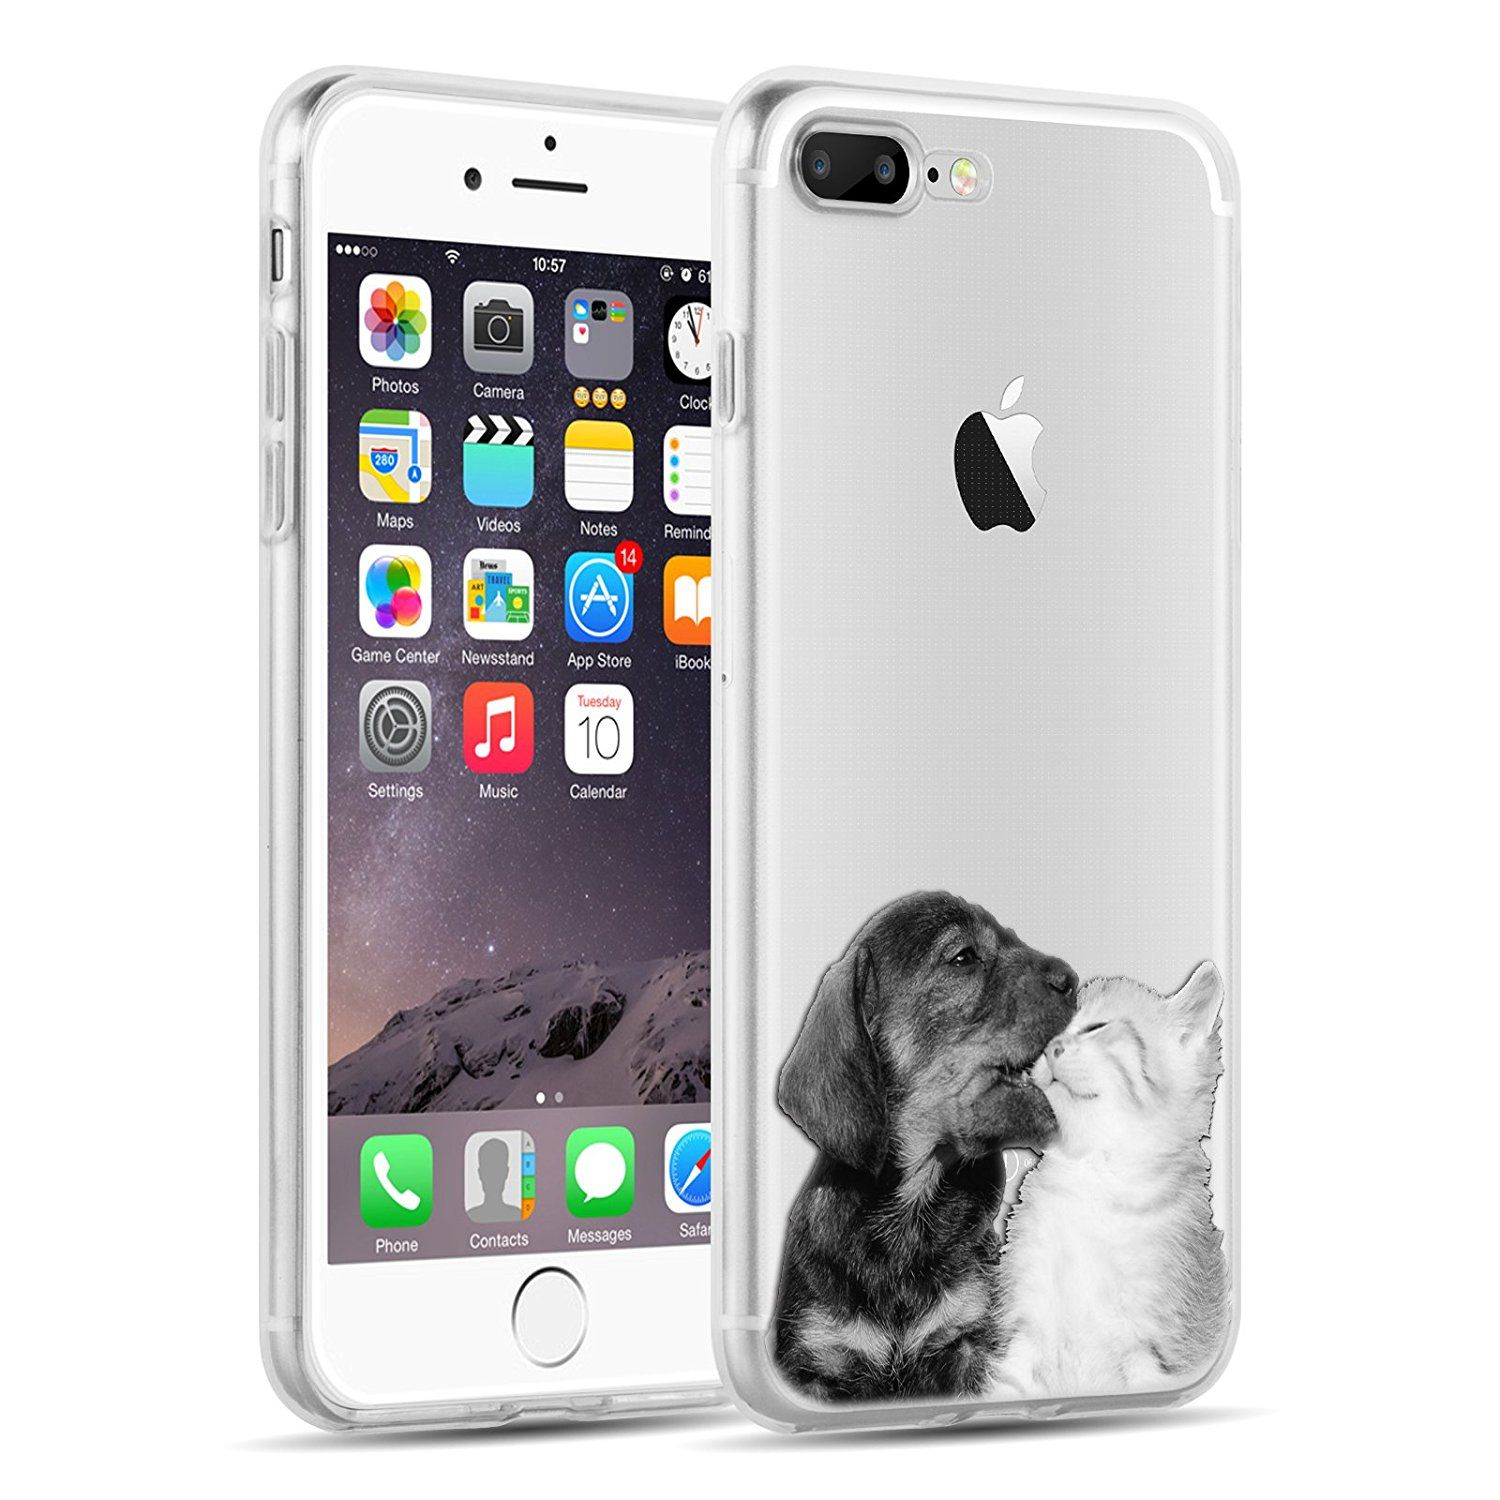 Iphone 8 Plus Iphone 7 Plus Clear Case Jammylizard Invisible Gel Sketch Clear Design Back Cover Dog Kiss Cat Iphone 7 Plus Iphone Iphone 7 Plus Cases